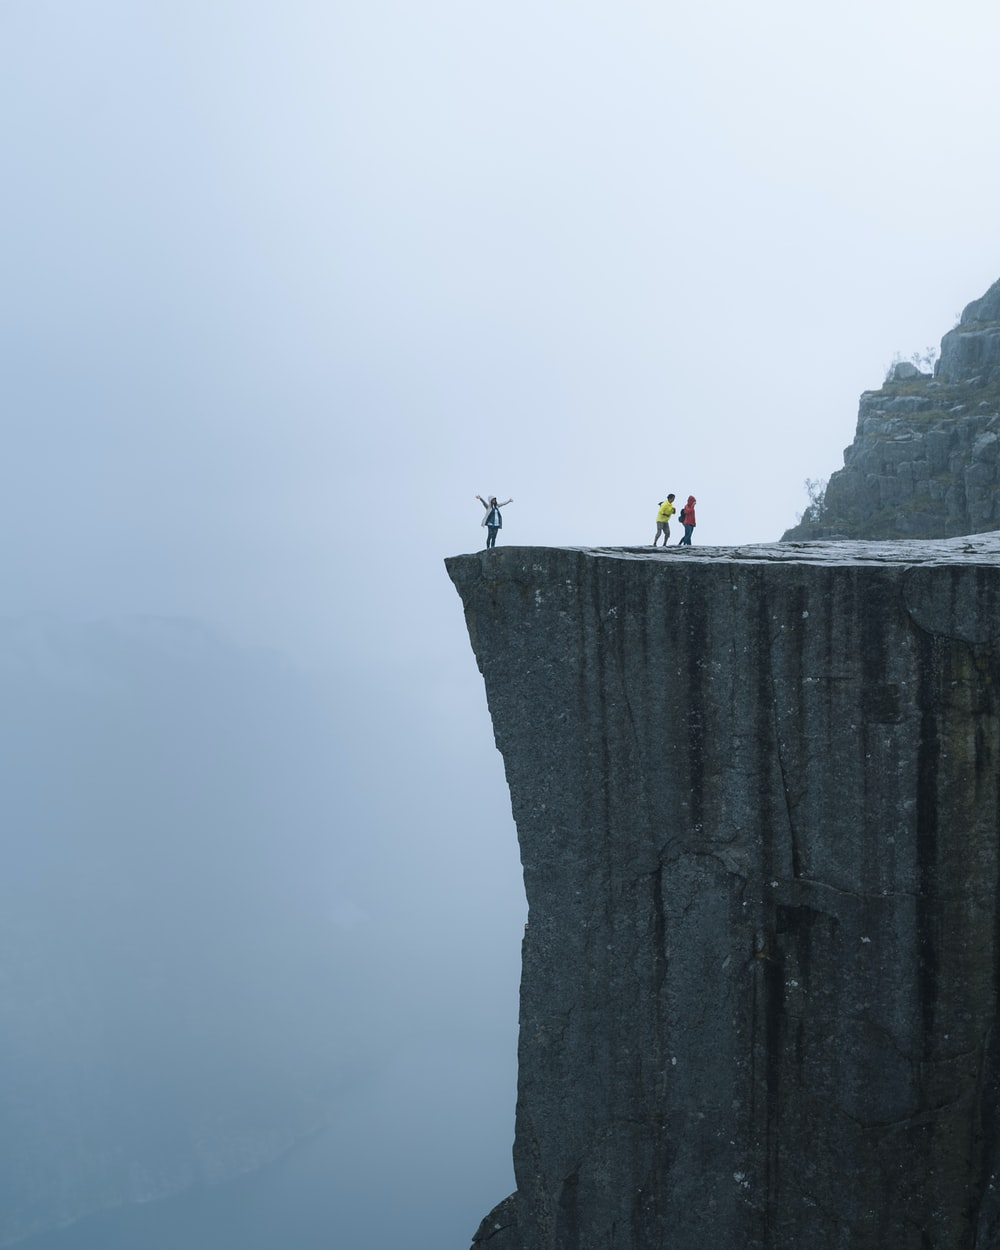 three persons standing near the edge of a cliff during day